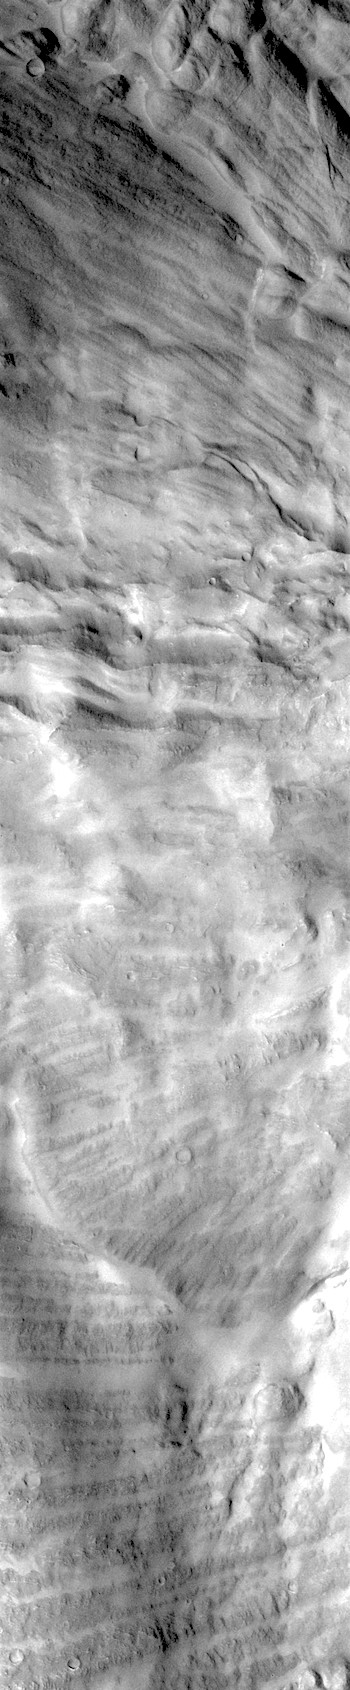 Landslide rubble in Candor Chasma (THEMIS_IOTD_20180116)